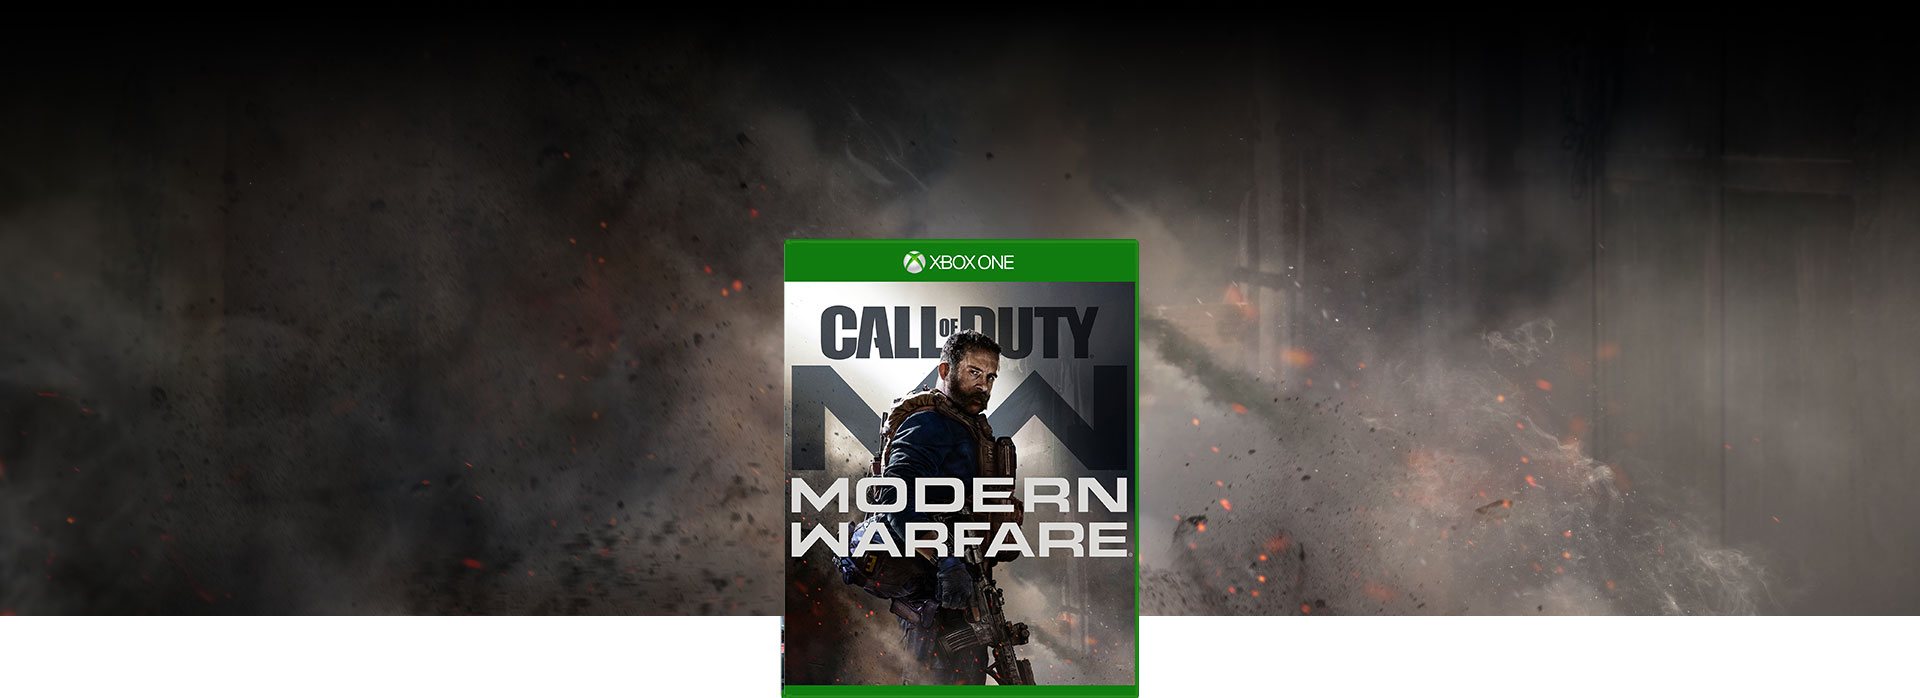 Call of Duty: Modern Warfare boxshot with background of debris from an explosion near a building